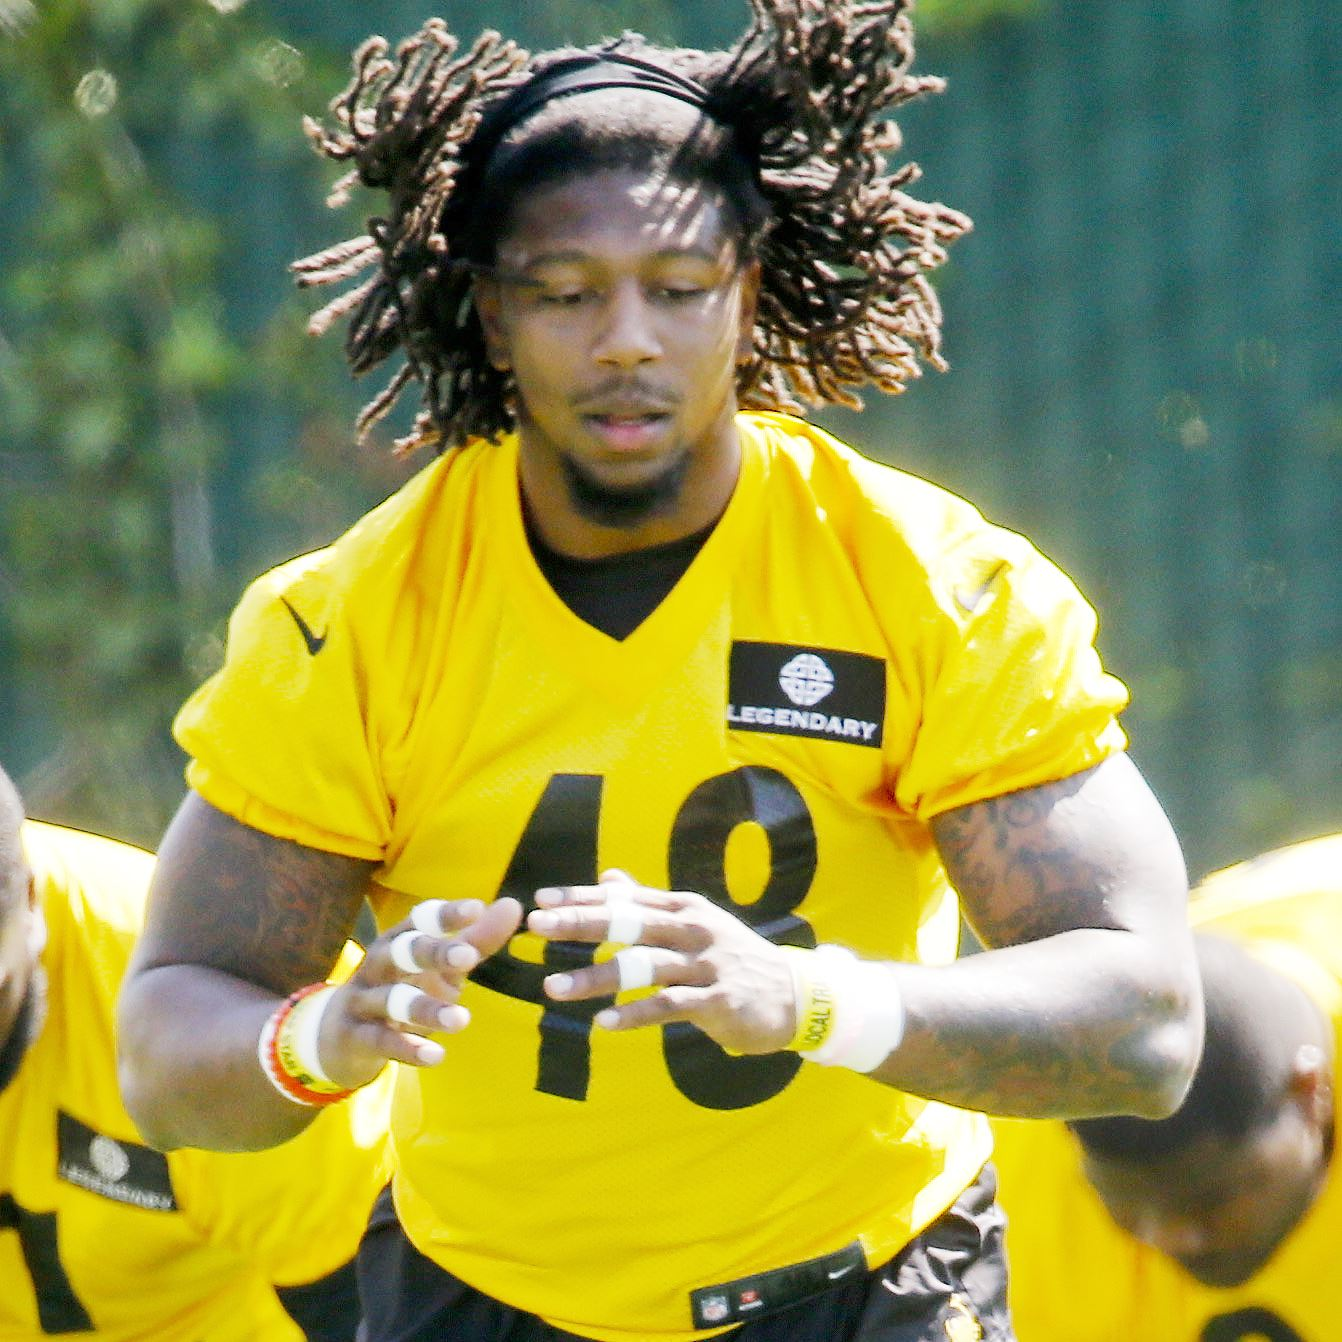 Rookie wall won't be a barrier for Bud Dupree in Year 2